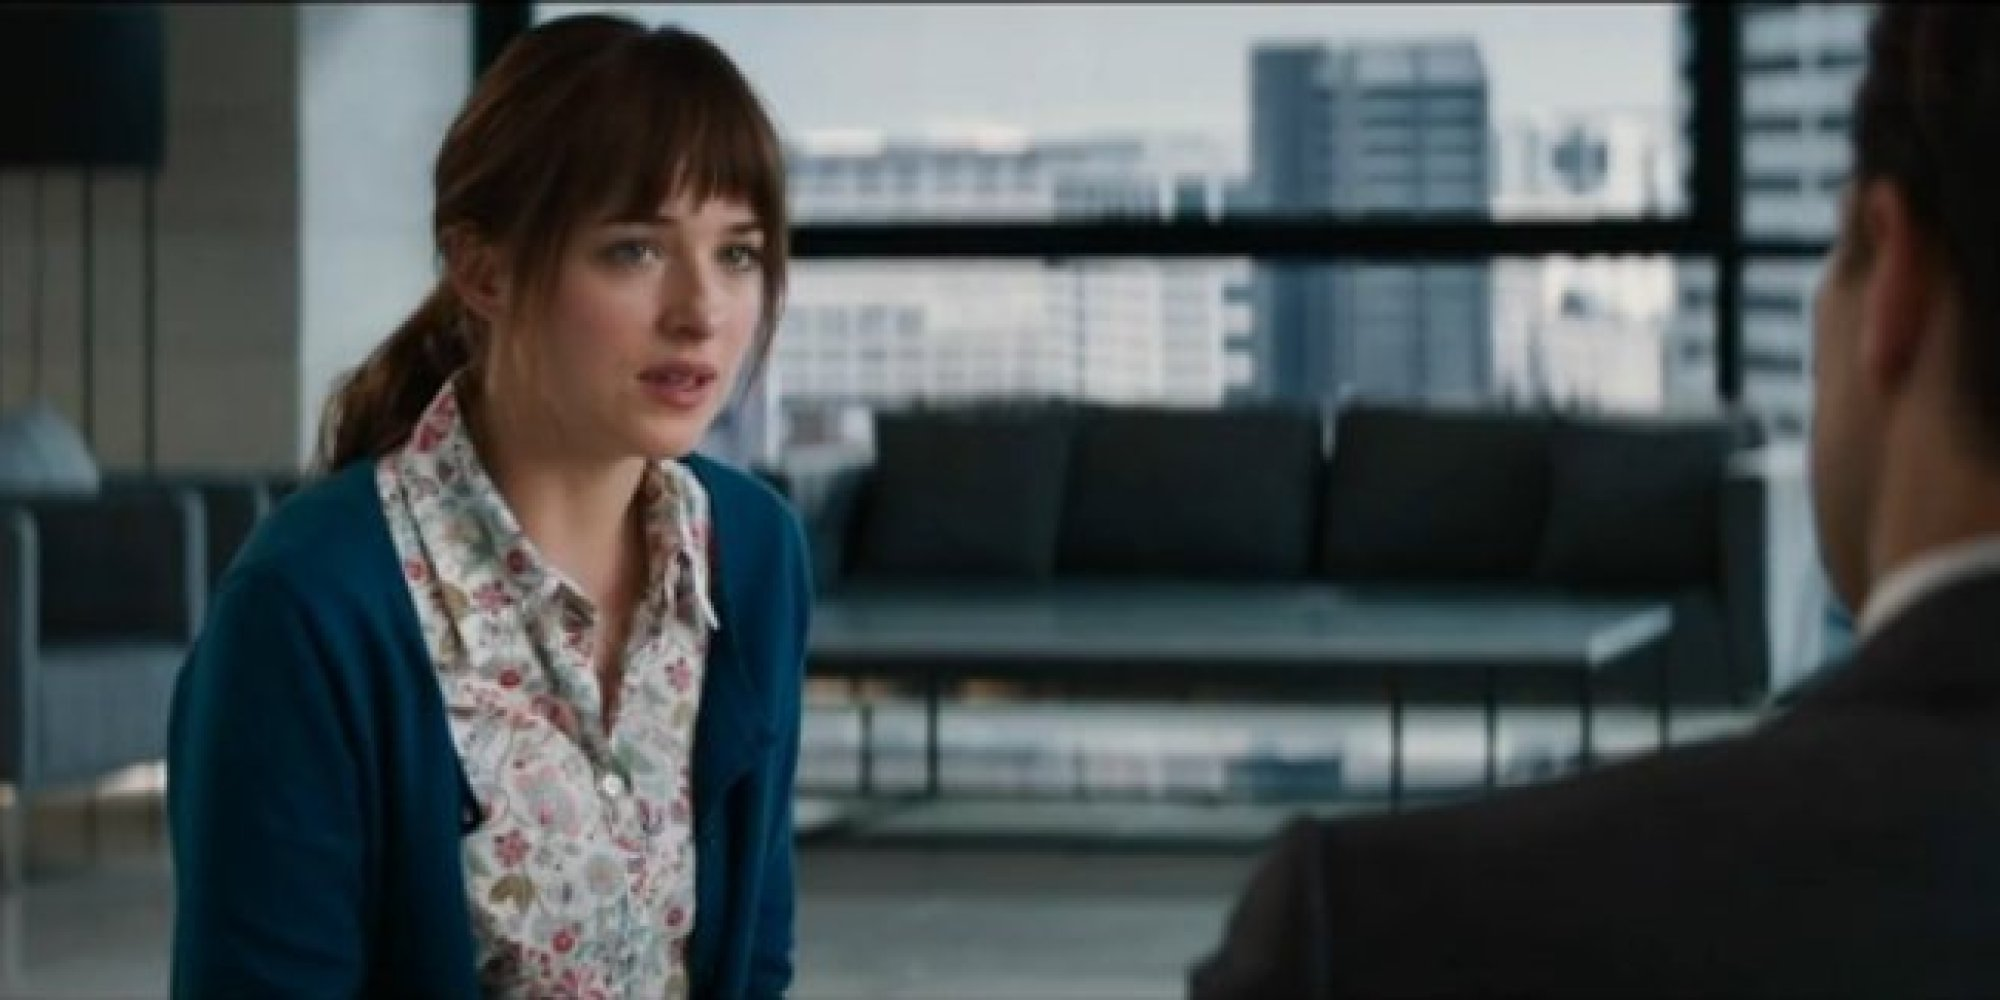 New 39 fifty shades of grey 39 trailer debuts during the for Fifty shades og grey